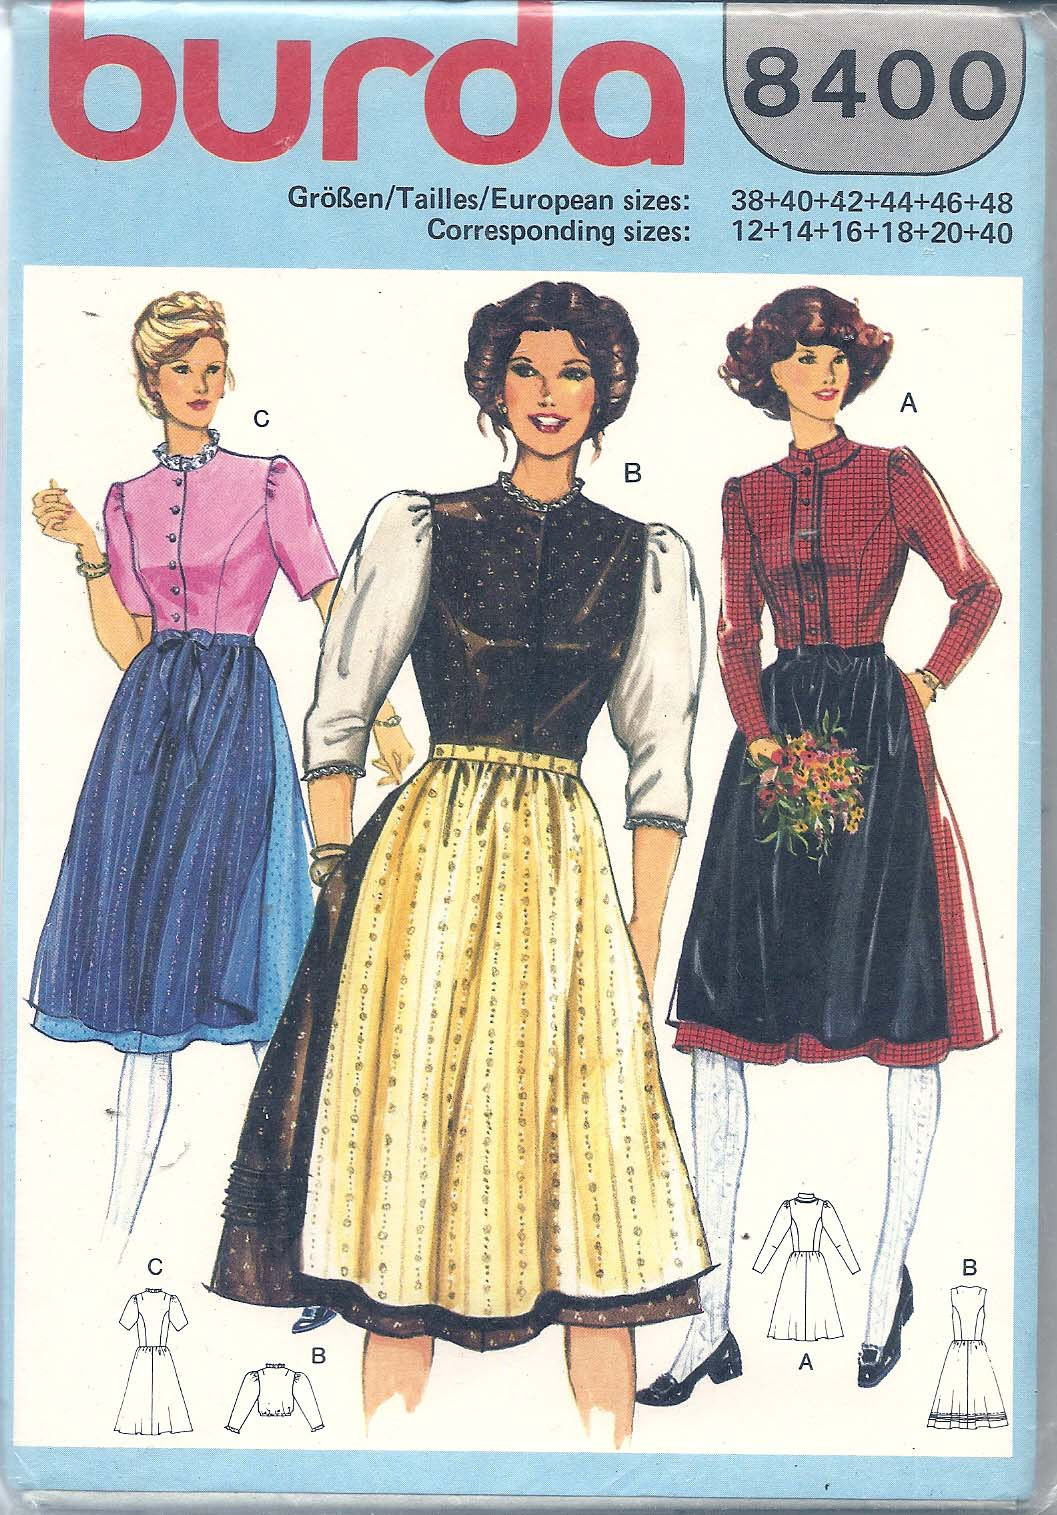 Burda 8400 | Vintage Sewing Patterns | FANDOM powered by Wikia